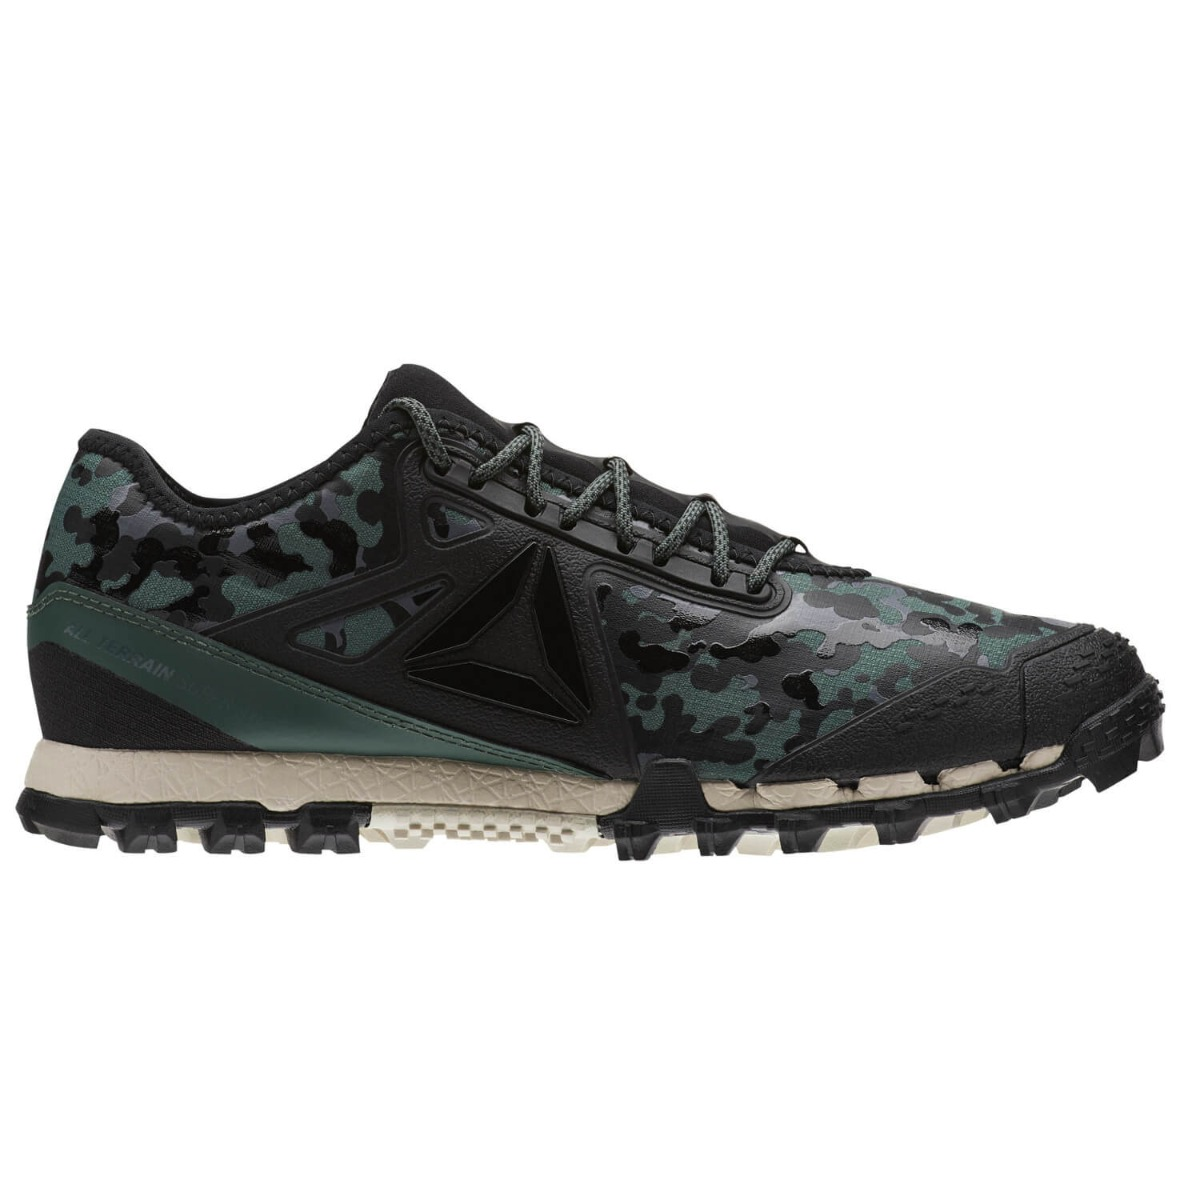 1e47fbbef5b Reebok AT Super 3.0 Stealth Women s Trail Shoes